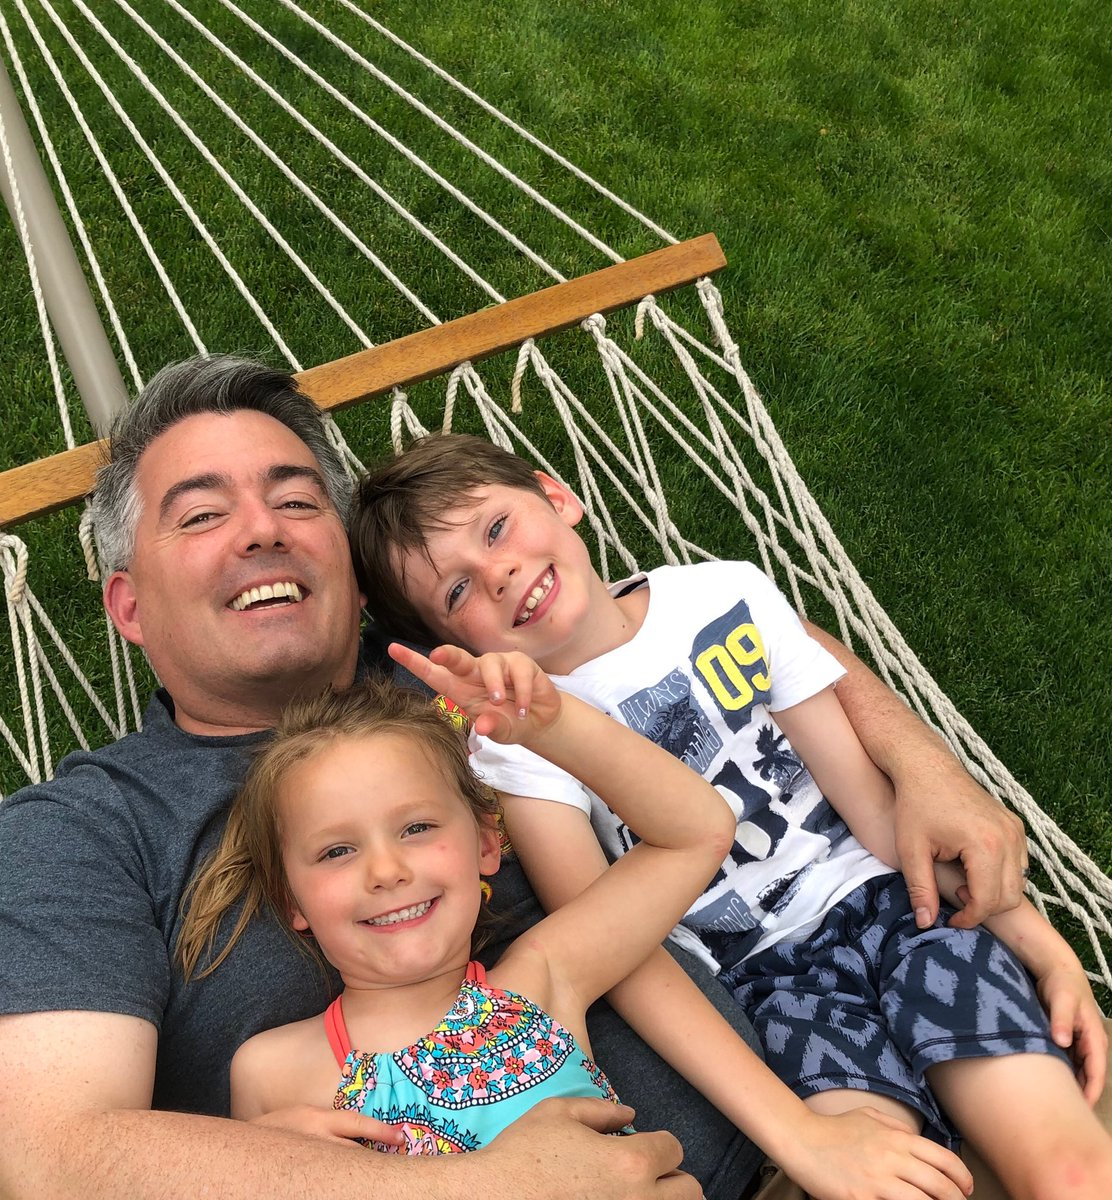 There's no better job in the world than being a Dad. #HappyFathersDay to all.